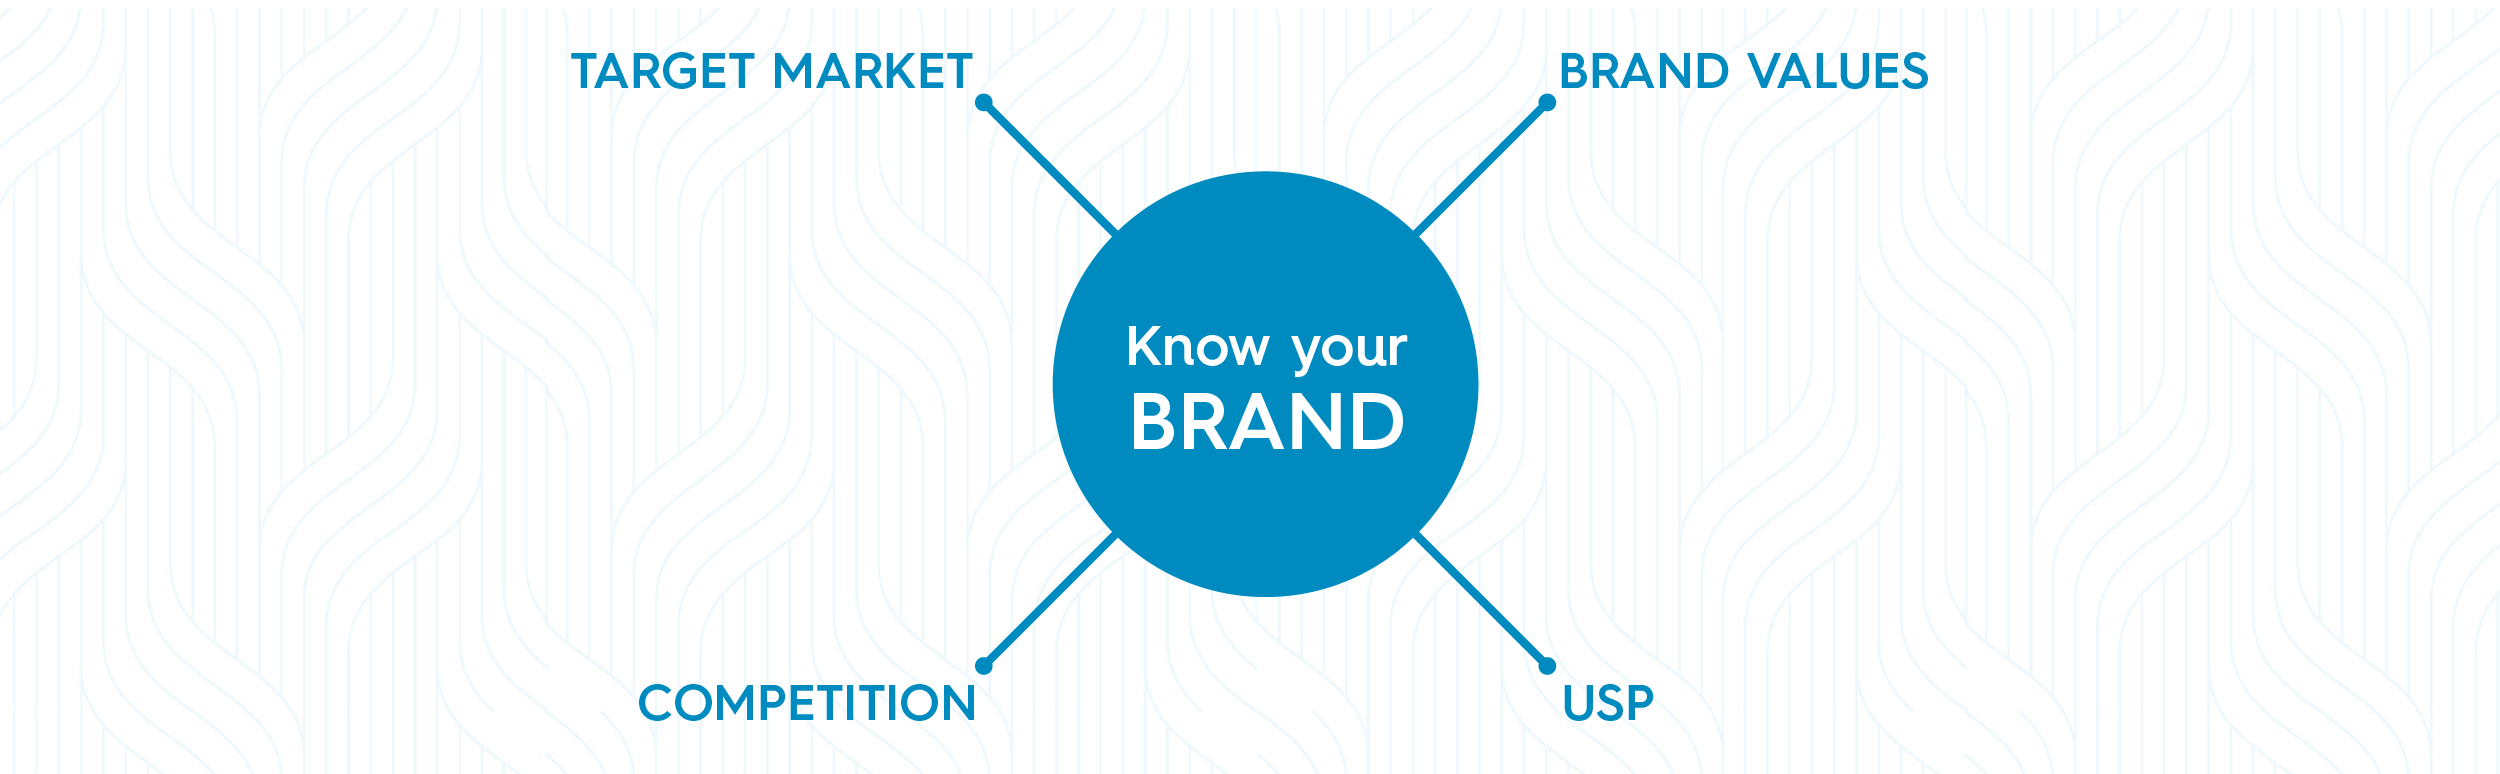 """A blue bubble web with """"know your brand in the center. On the outer portion, the bubbles list """"Target market, Brand values, competition, USP"""""""